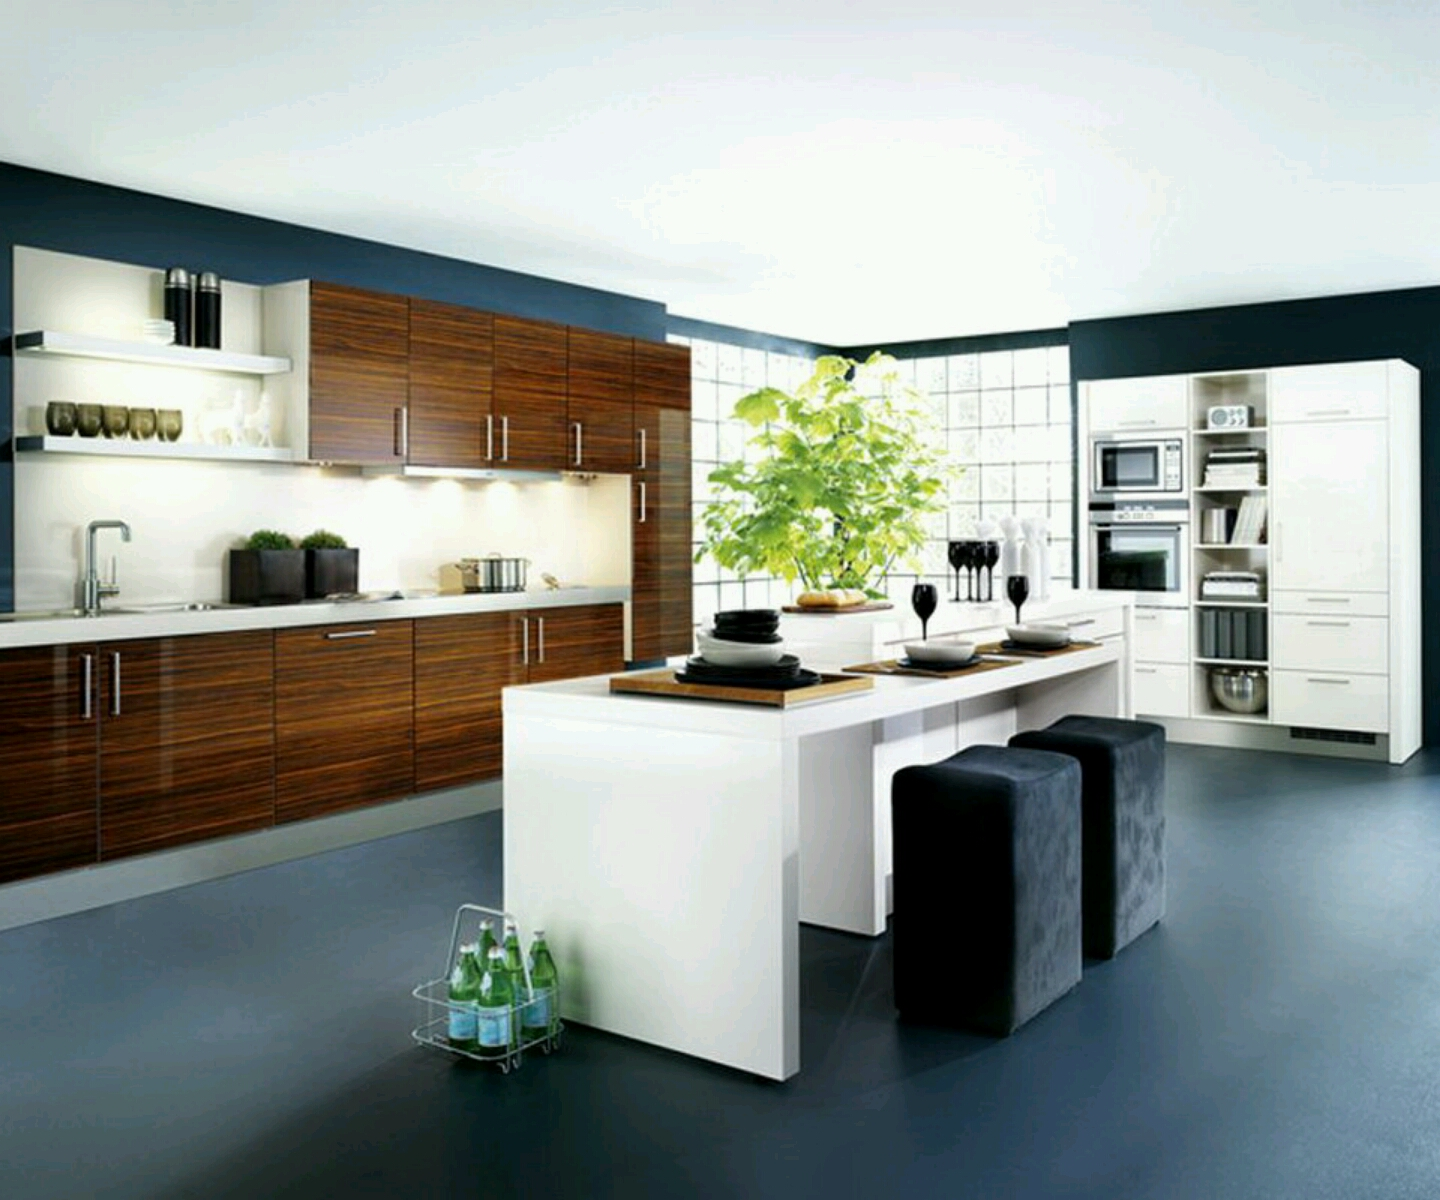 New home designs latest kitchen cabinets designs modern for Modern kitchen furniture images